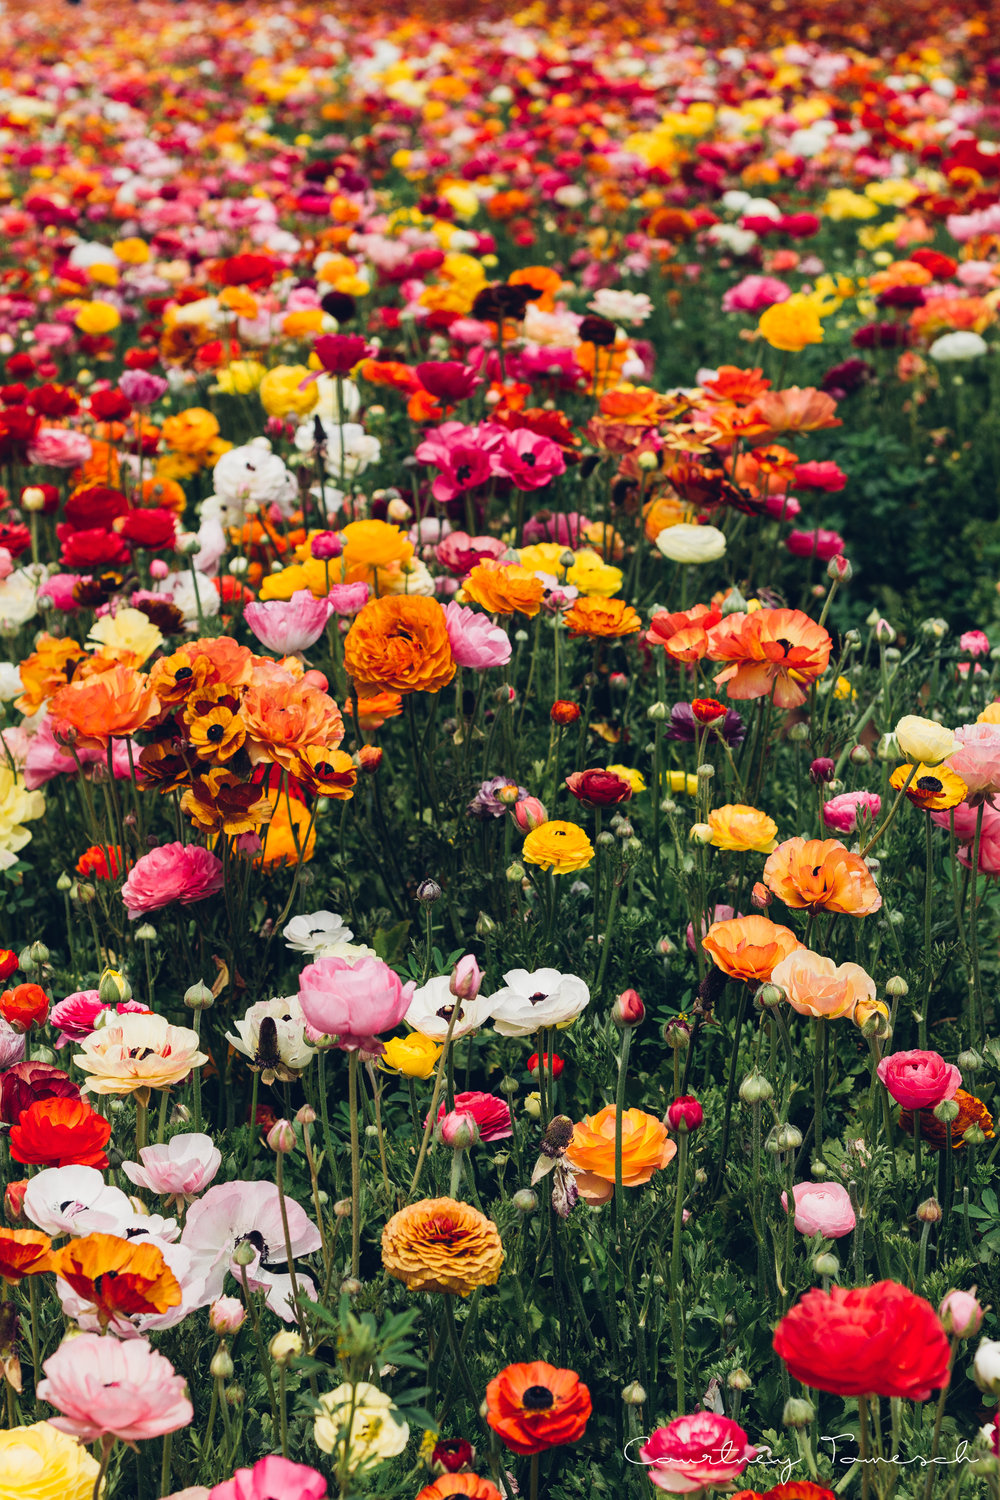 FlowerField_47.jpg